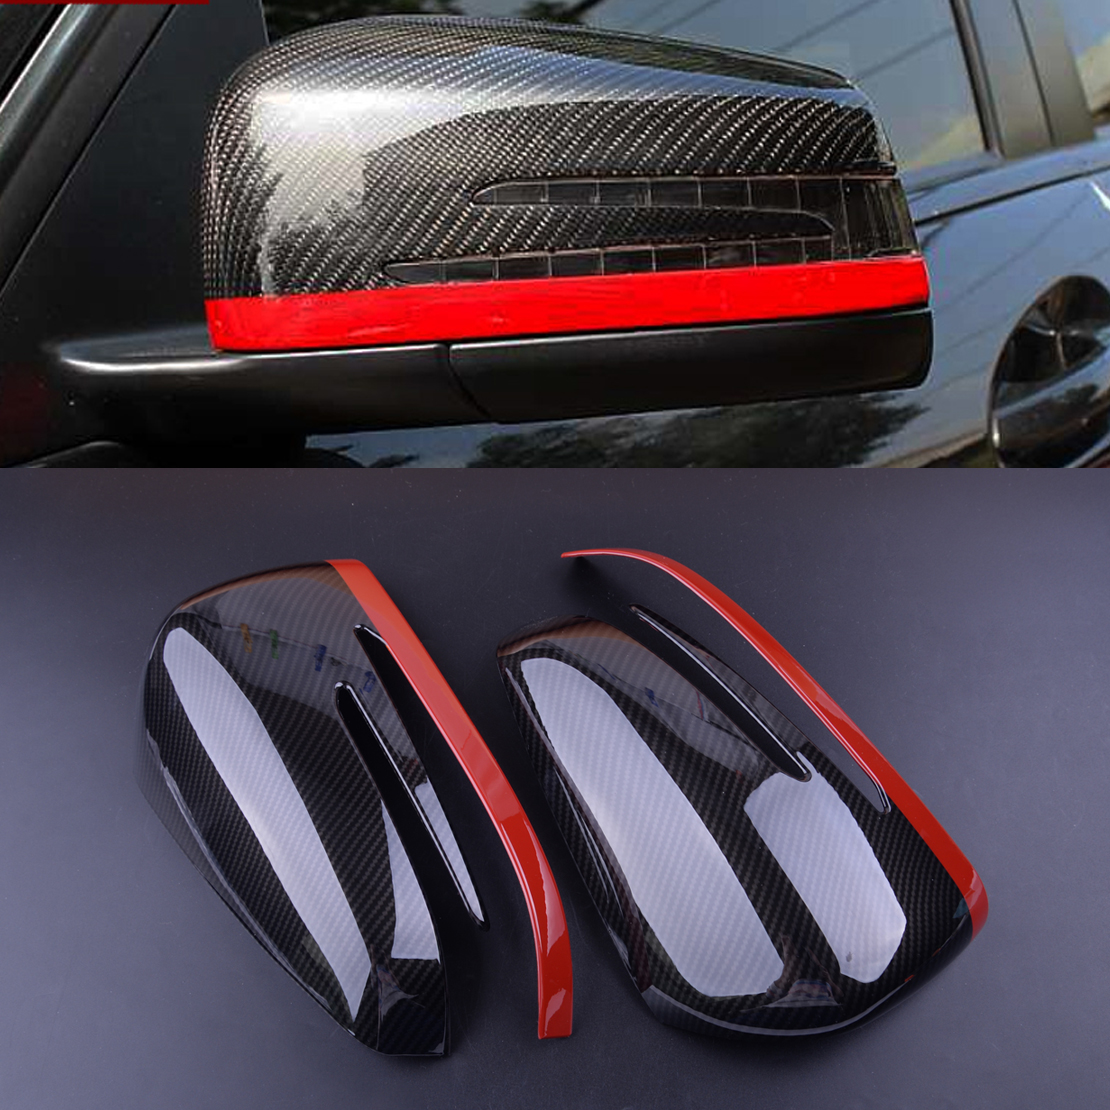 beler Black 2Pcs ABS Rear View Mirror Protection Trim Fit for Mercedes Benz A CLA GLA GLK Class W117 W176 2014 2015 2016 2017